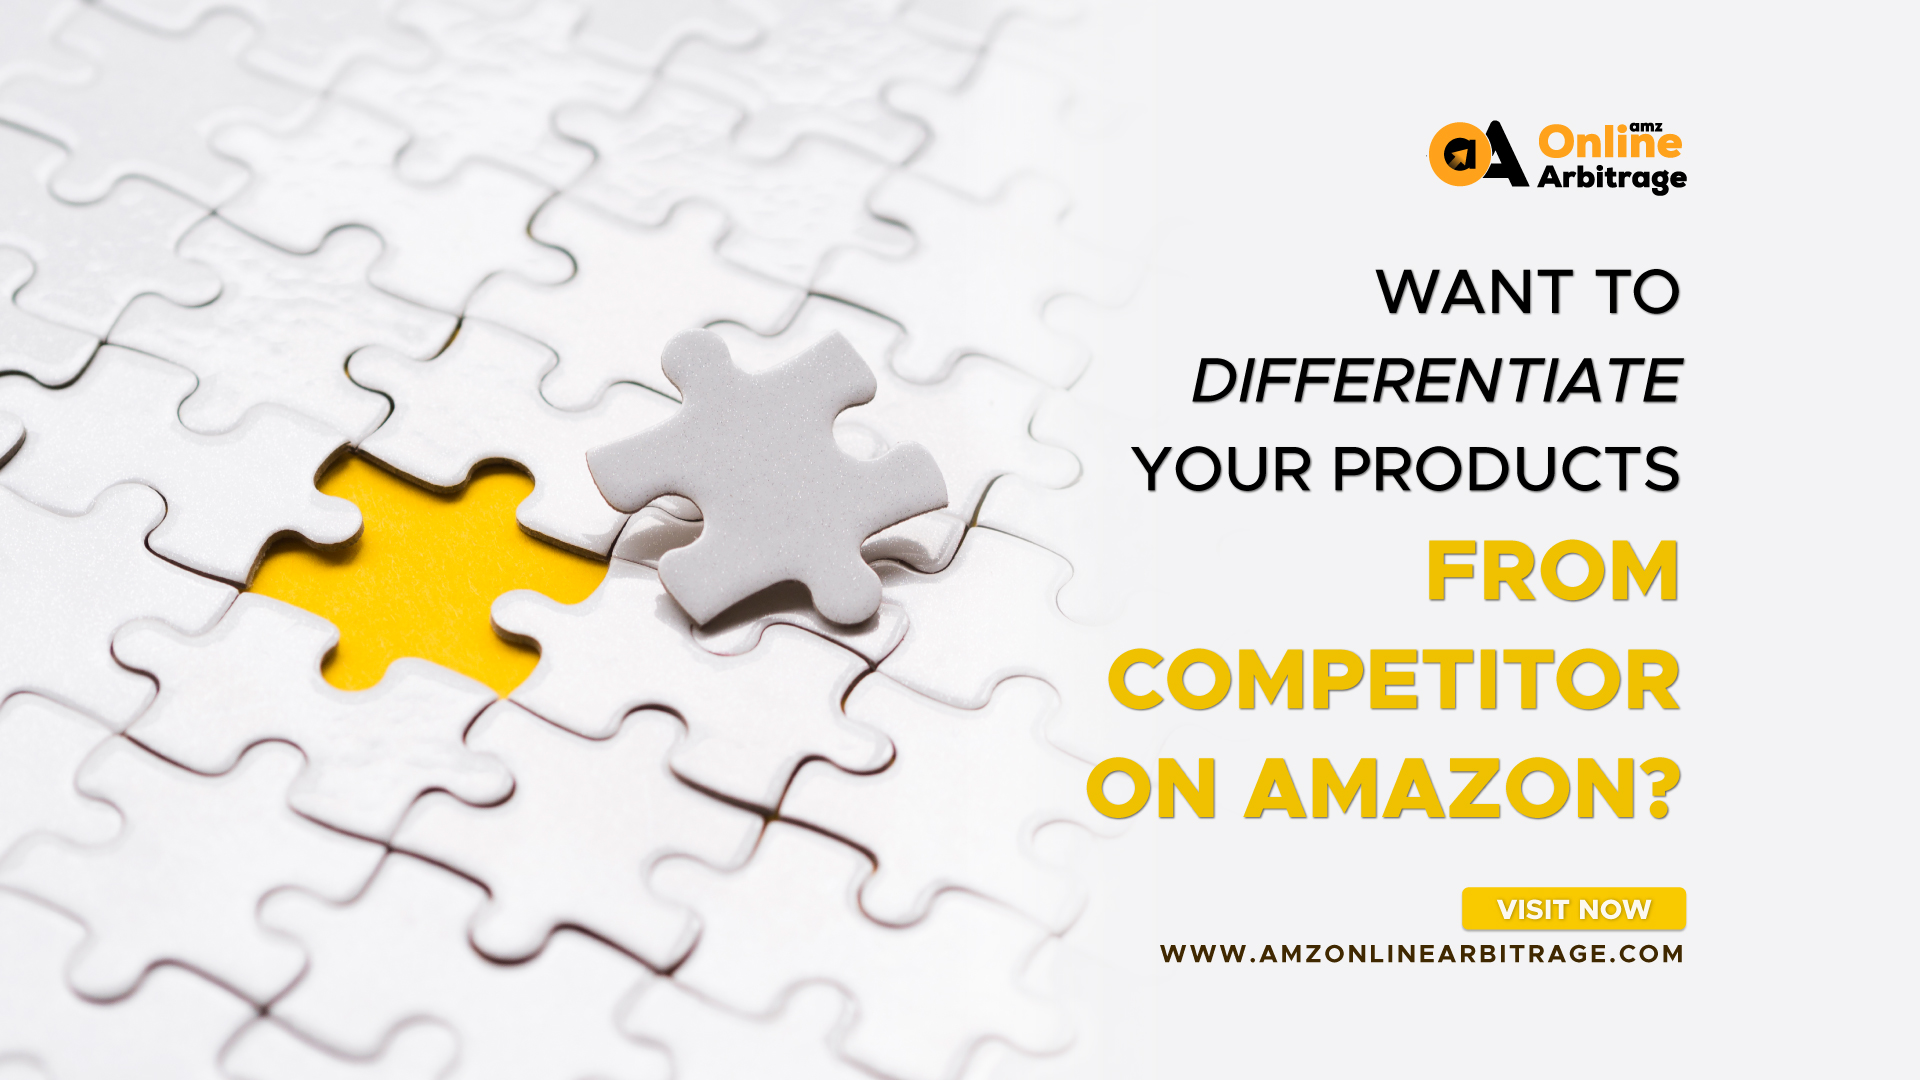 WANT TO DIFFERENTIATE YOUR PRODUCTS FROM COMPETITOR ON AMAZON?